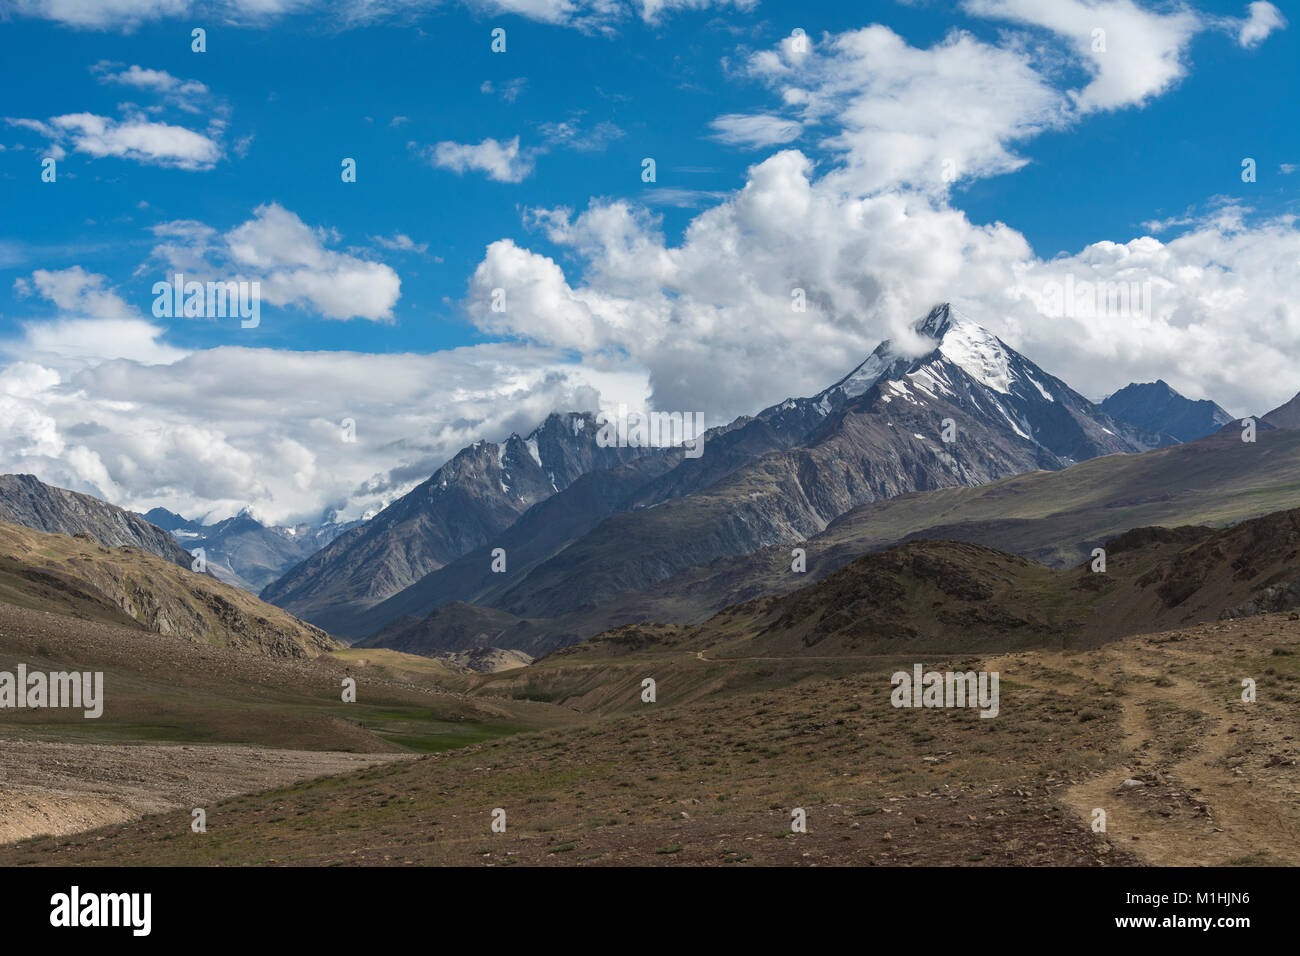 Snow capped mountains near Chandra Taal - Stock Image